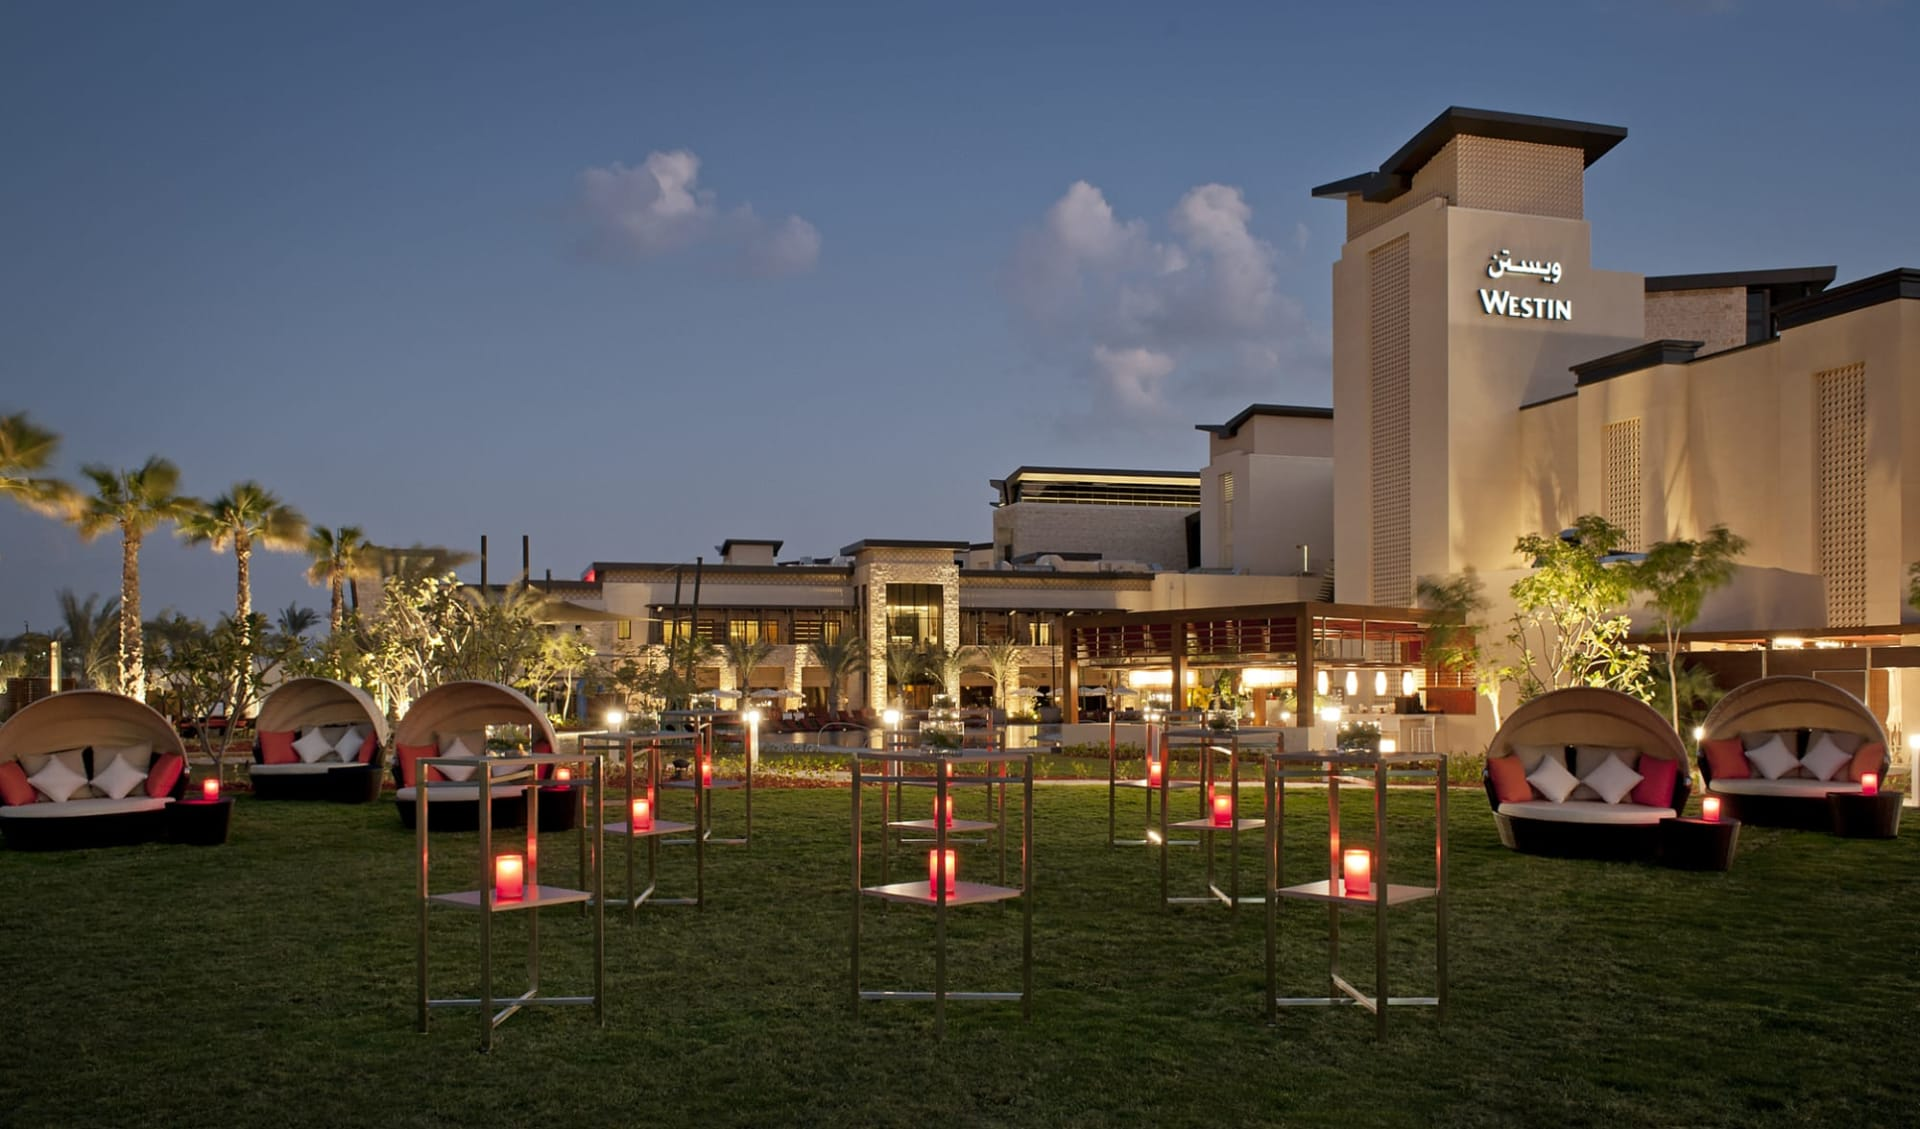 The Westin Abu Dhabi Golf Resort & Spa:  The Westin Abu Dhabi Golf Resort & Spa - Aufenthaltsbereich aussen